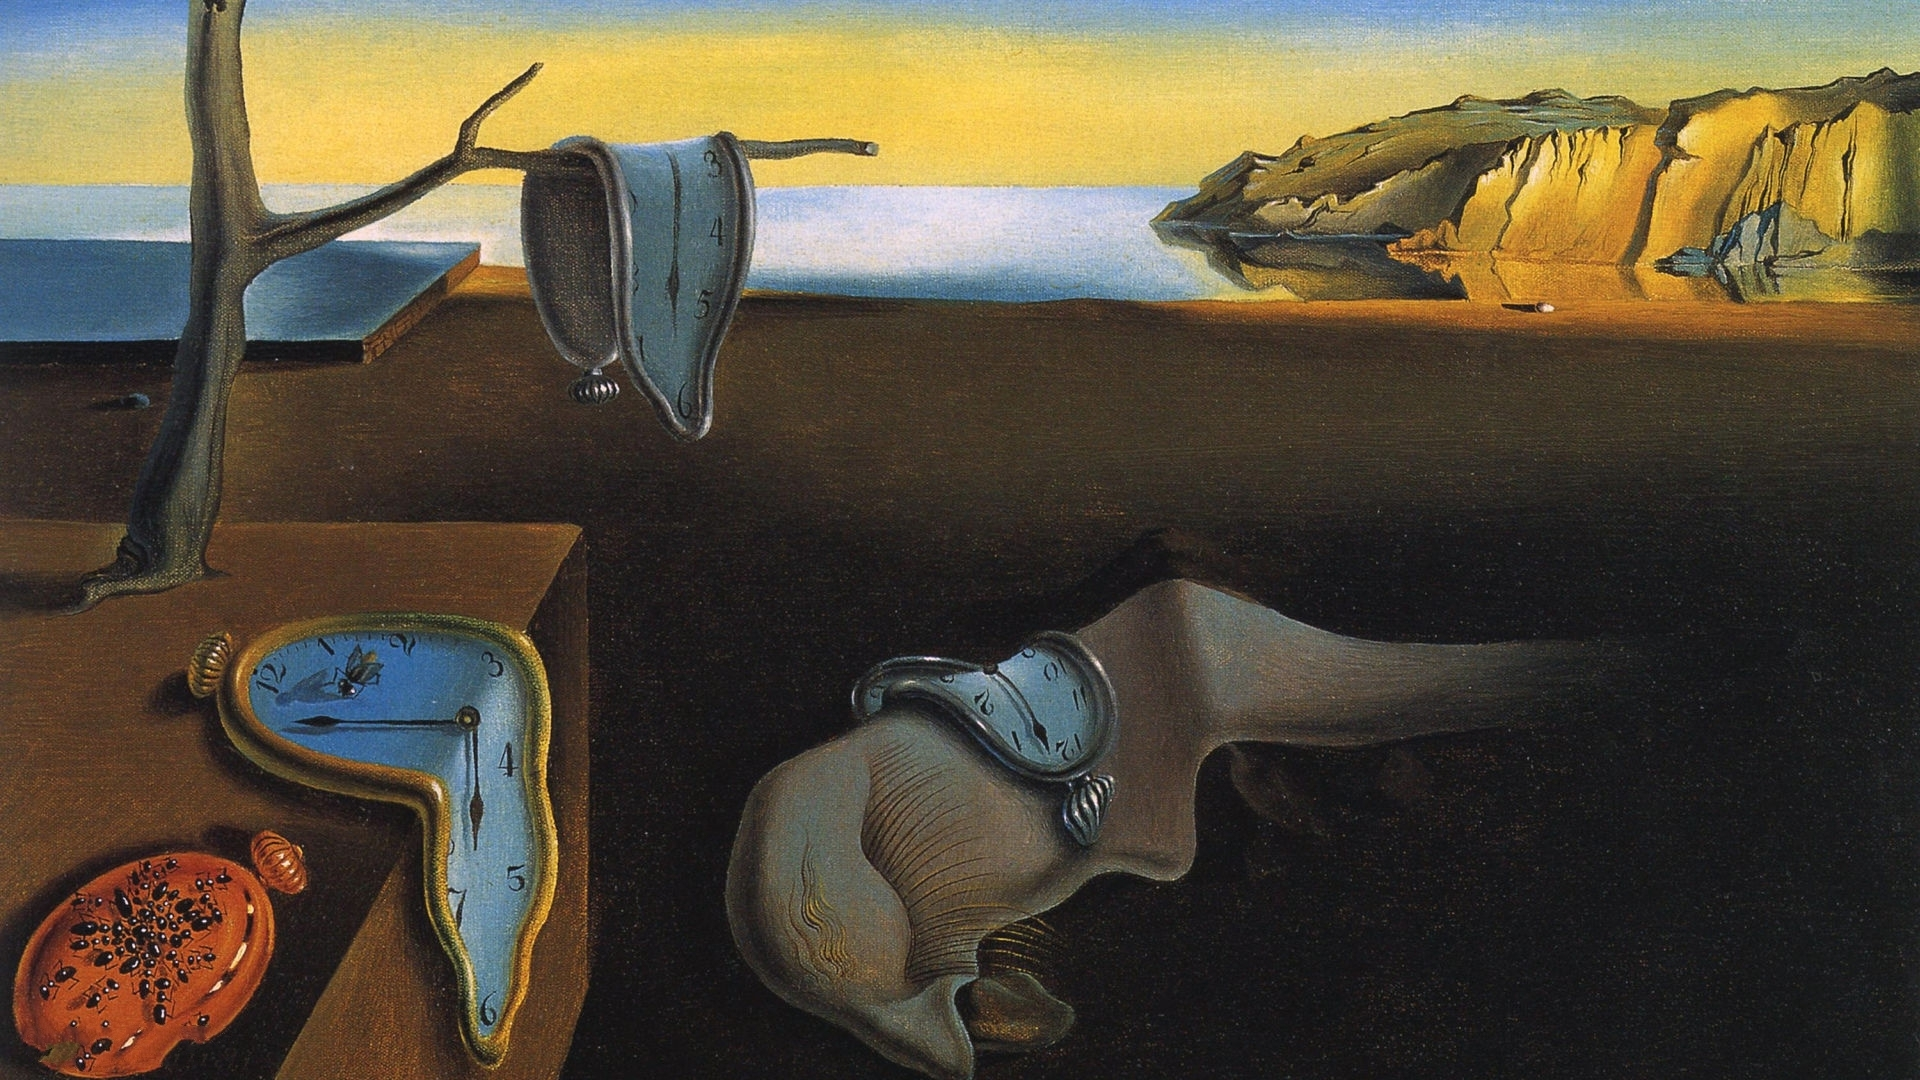 salvador dali wallpaper full hd. - media file | pixelstalk